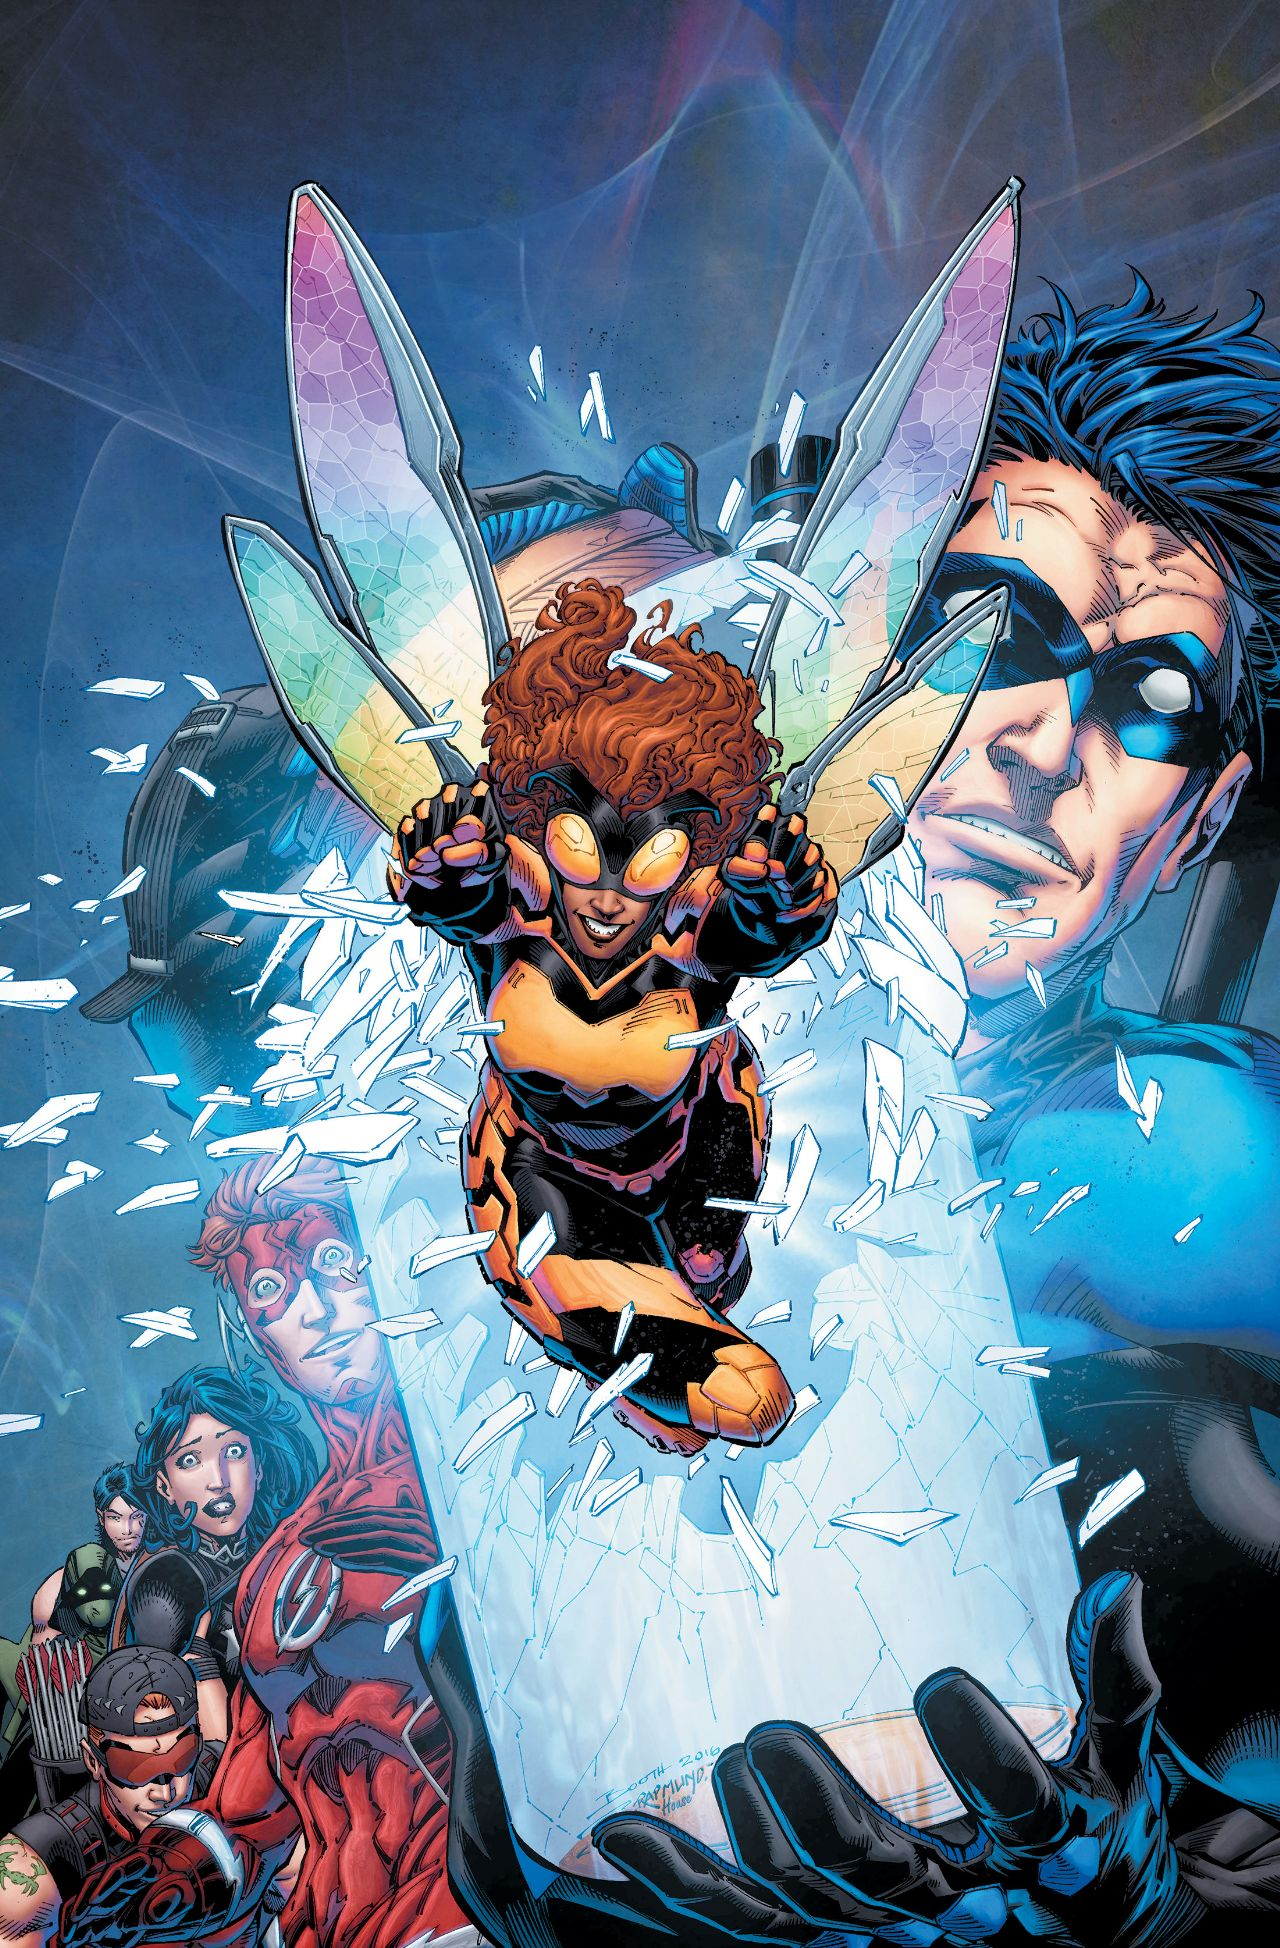 Image titans vol 3 9 textless jpg dc database fandom powered by wikia